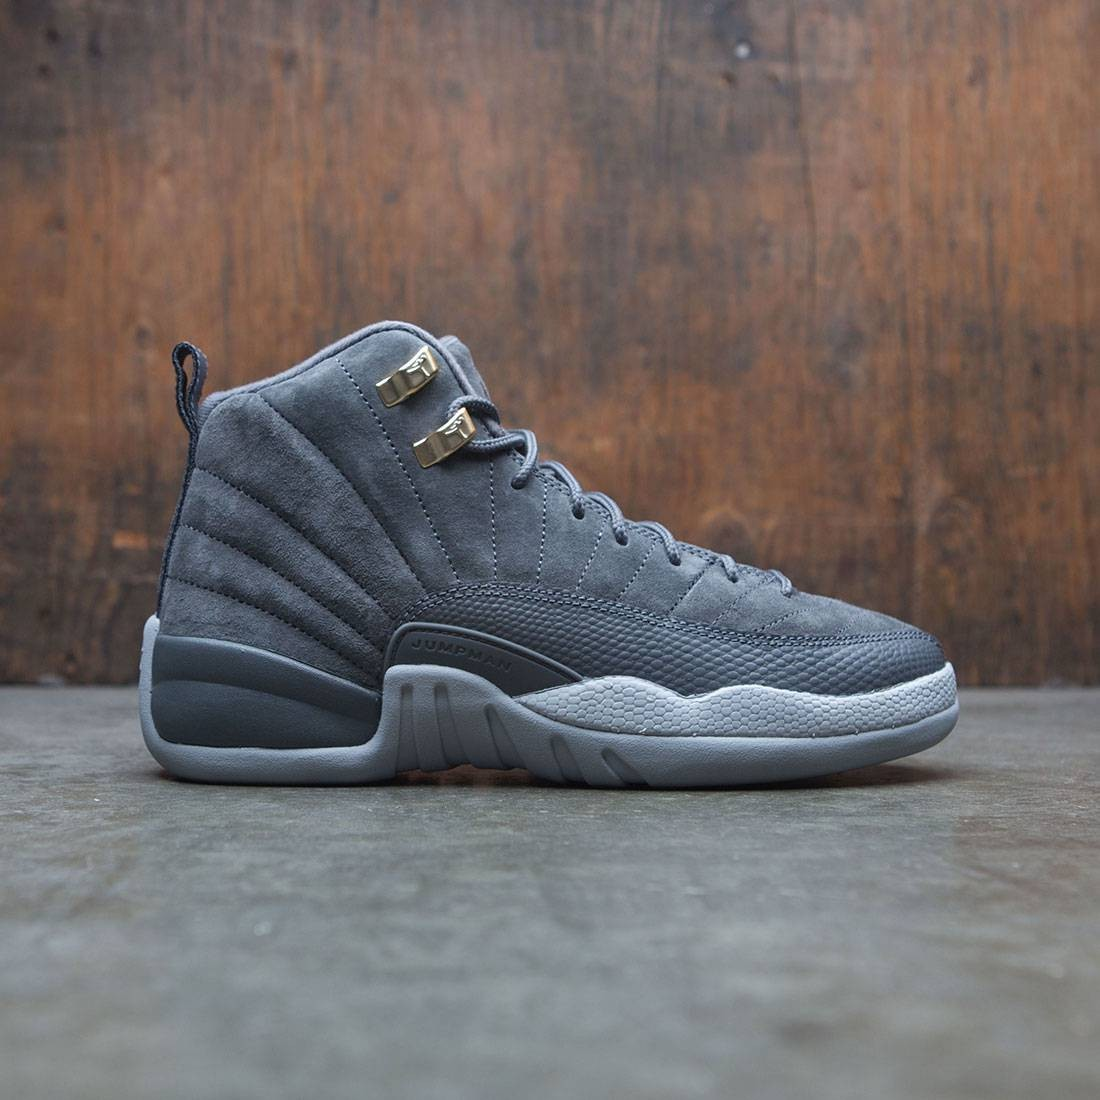 7720135156e789 jordan big kids air jordan 12 retro gs dark grey dark grey wolf grey